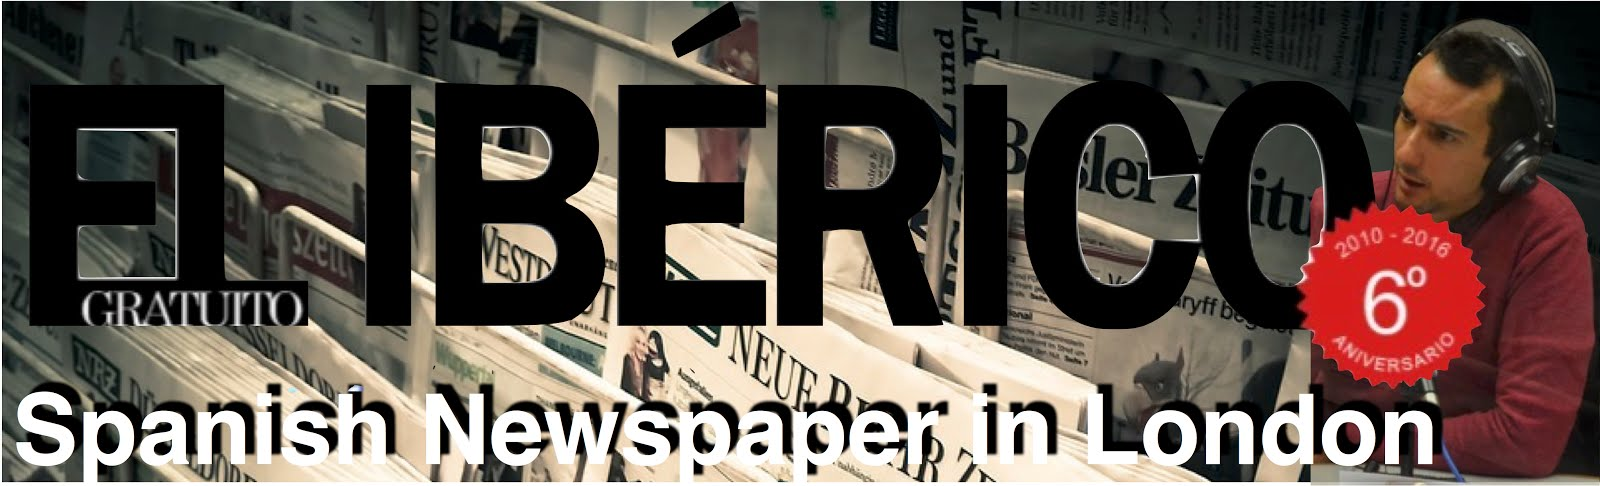 El Ibérico / Spanish Newspaper in London